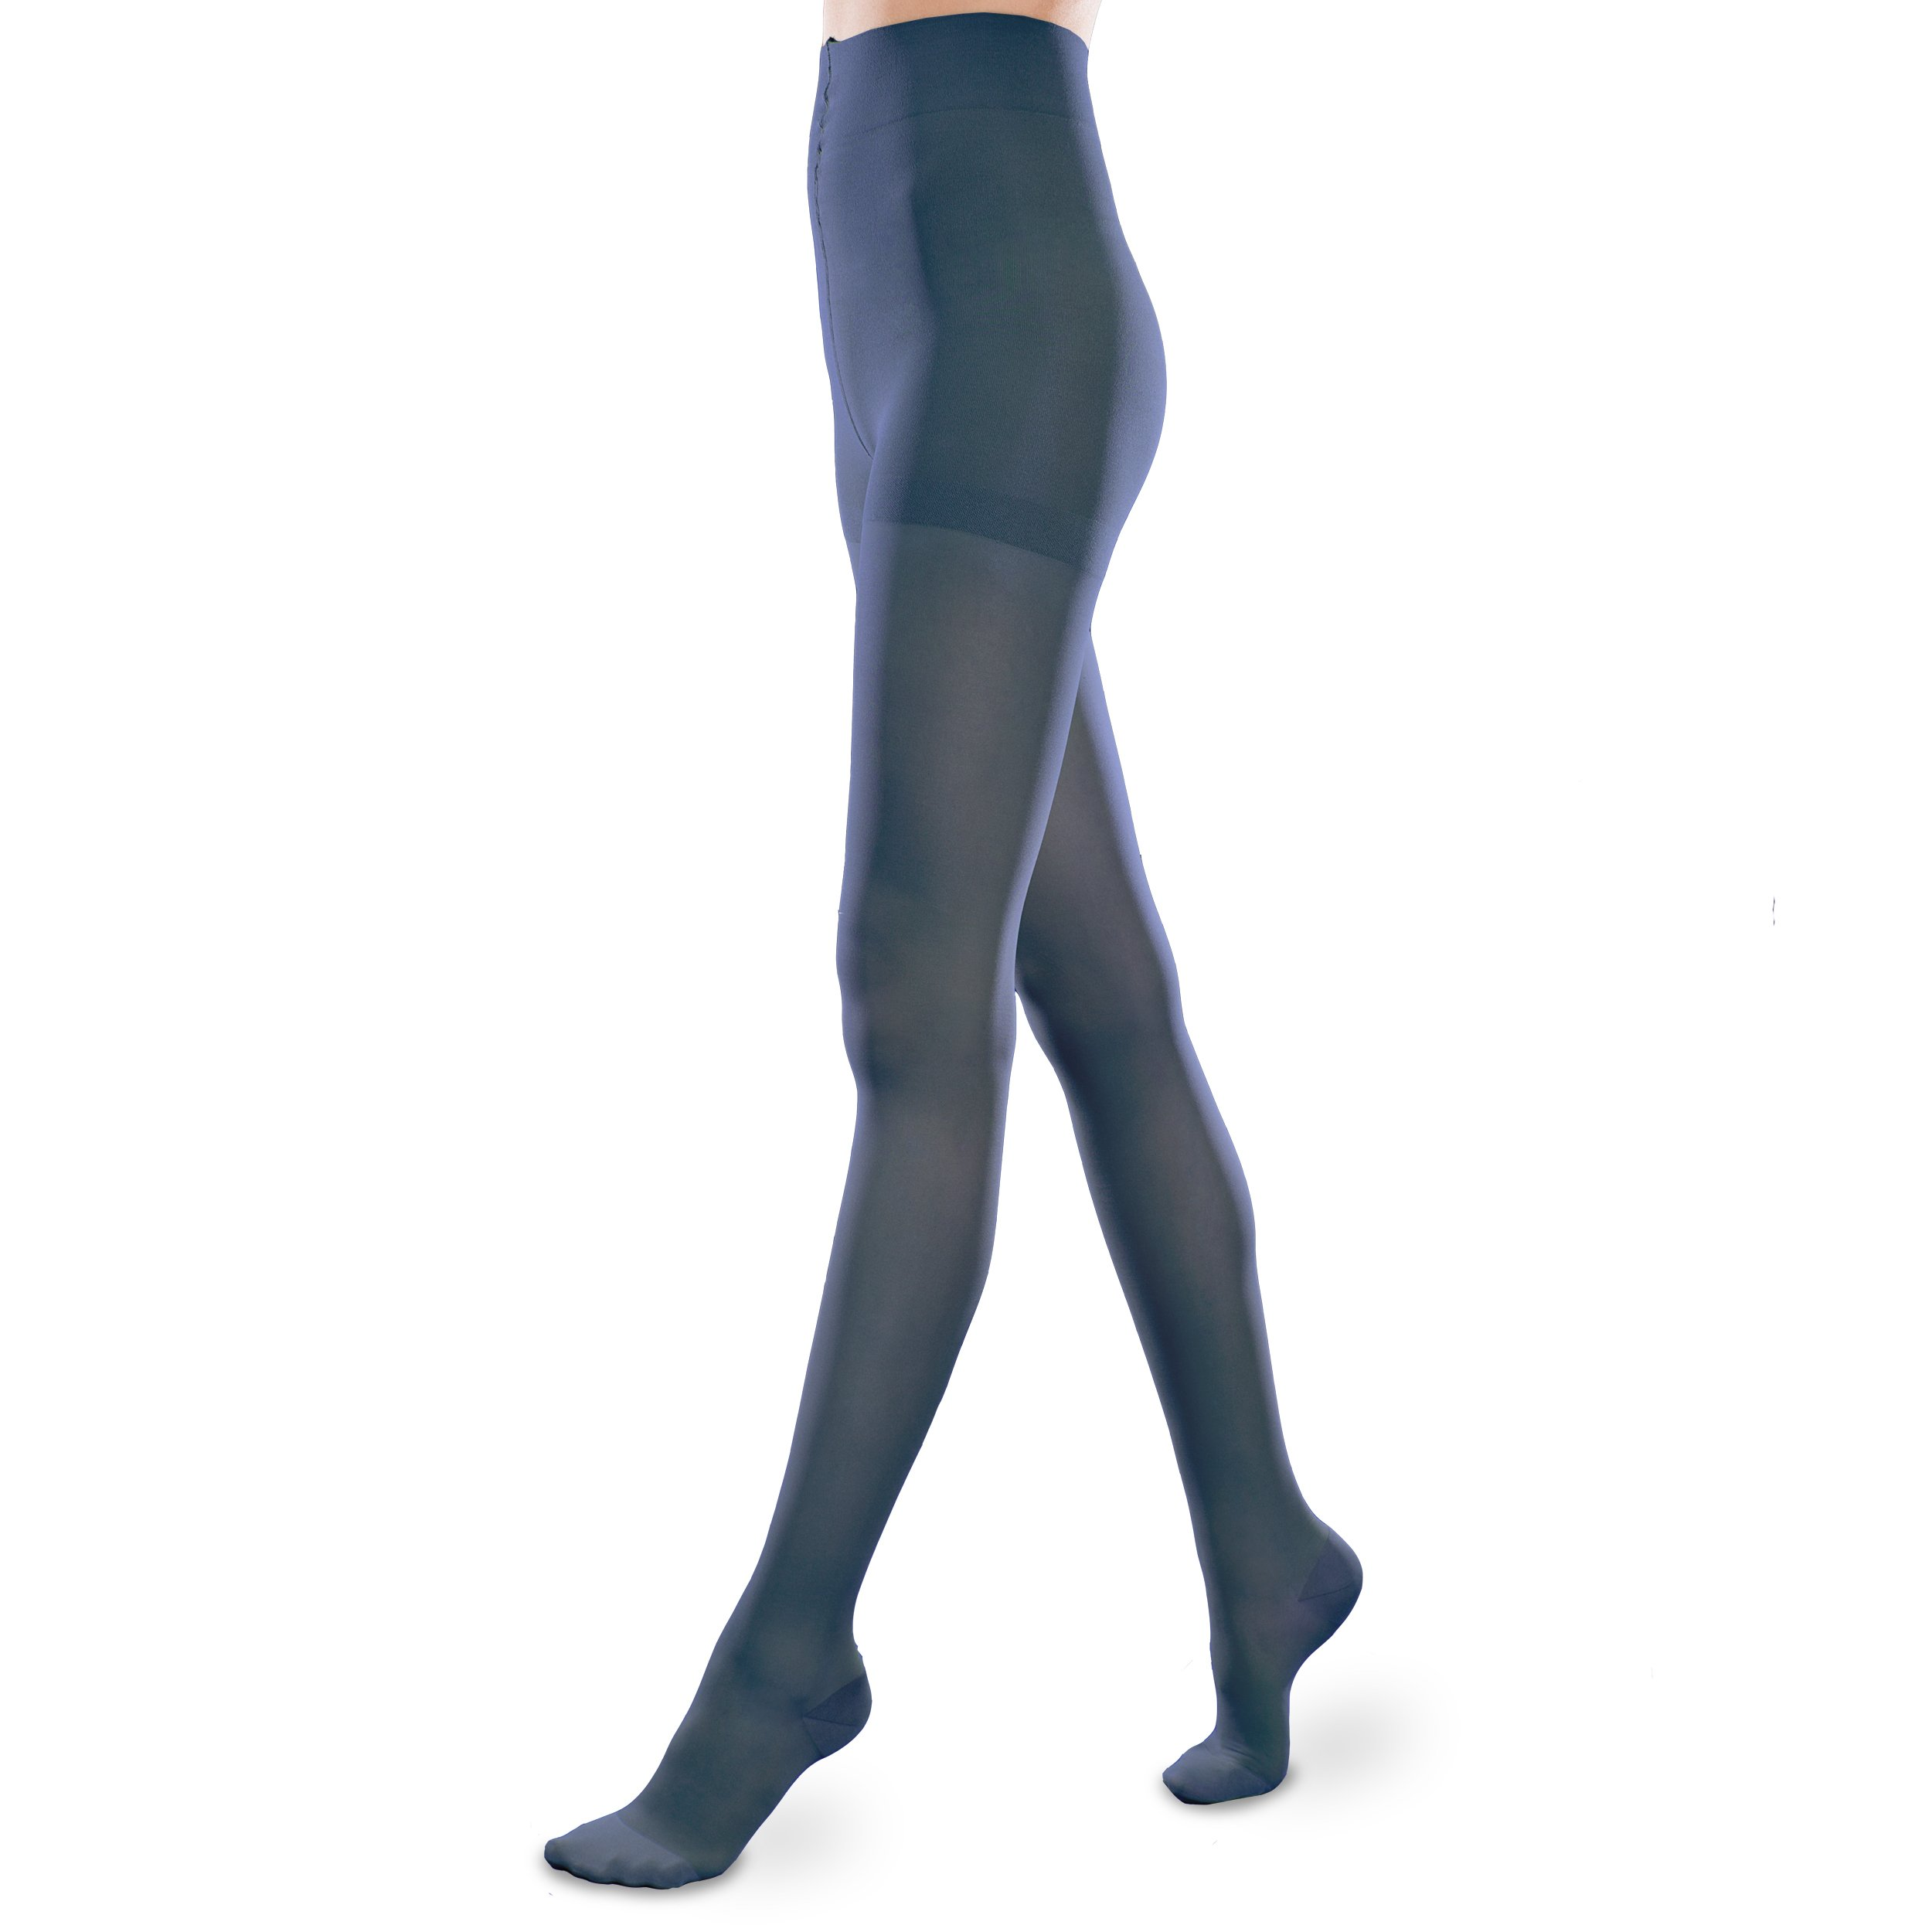 Sheer Ease Women's Support Pantyhose - 20-30mmHg Moderate Compression Stockings (Navy, Small Long)